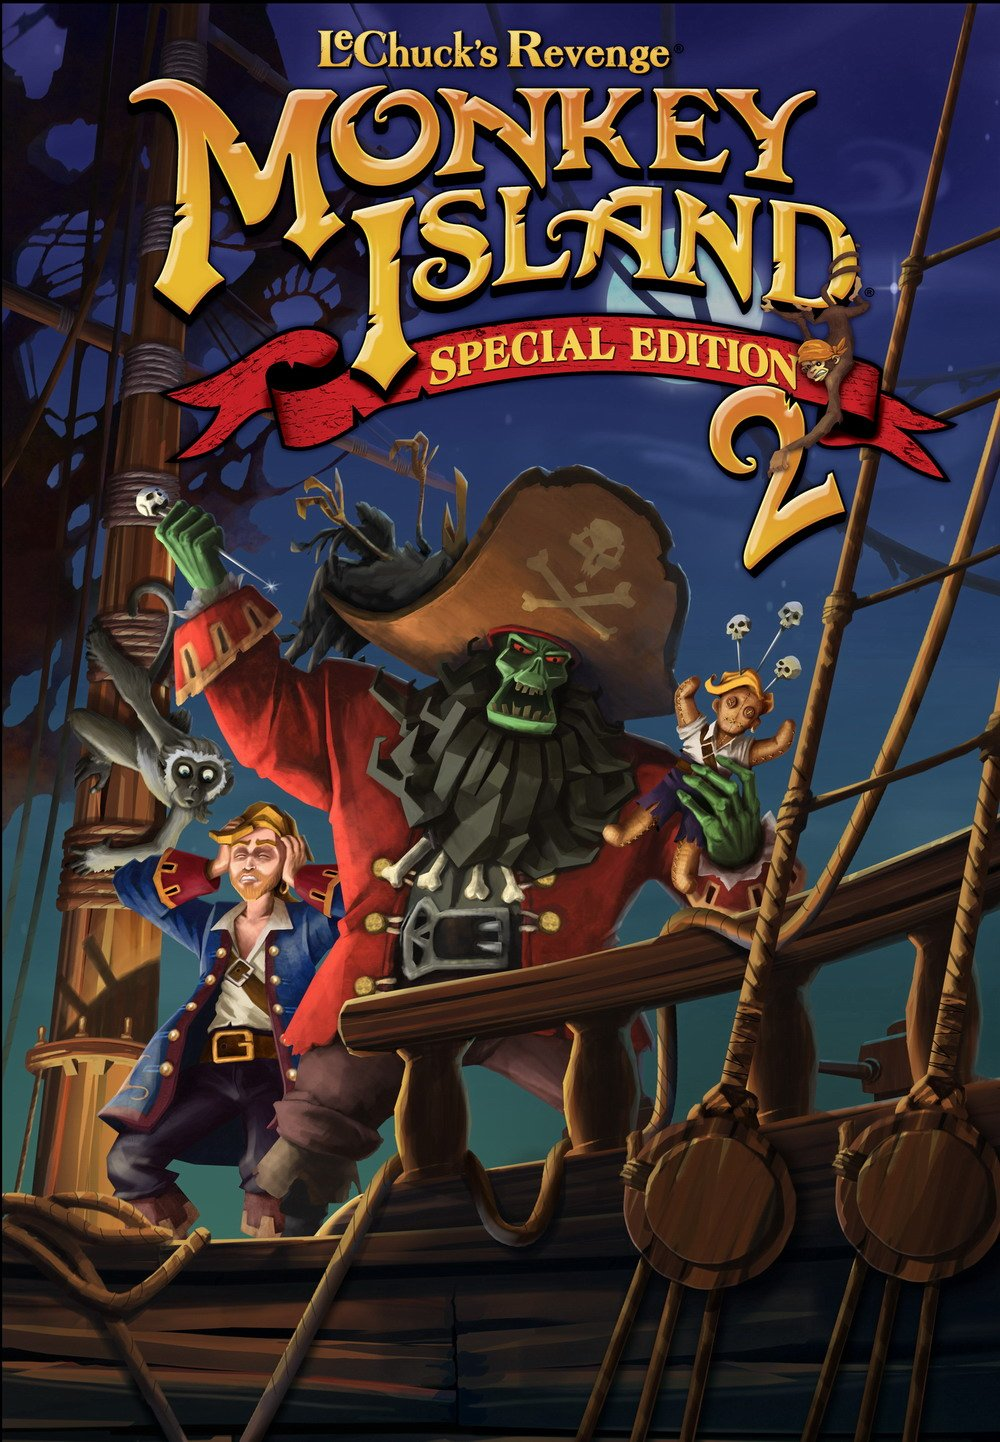 Monkey Island 2 Special Edition: LeChuck's Revenge (XBOX 360) Review 3